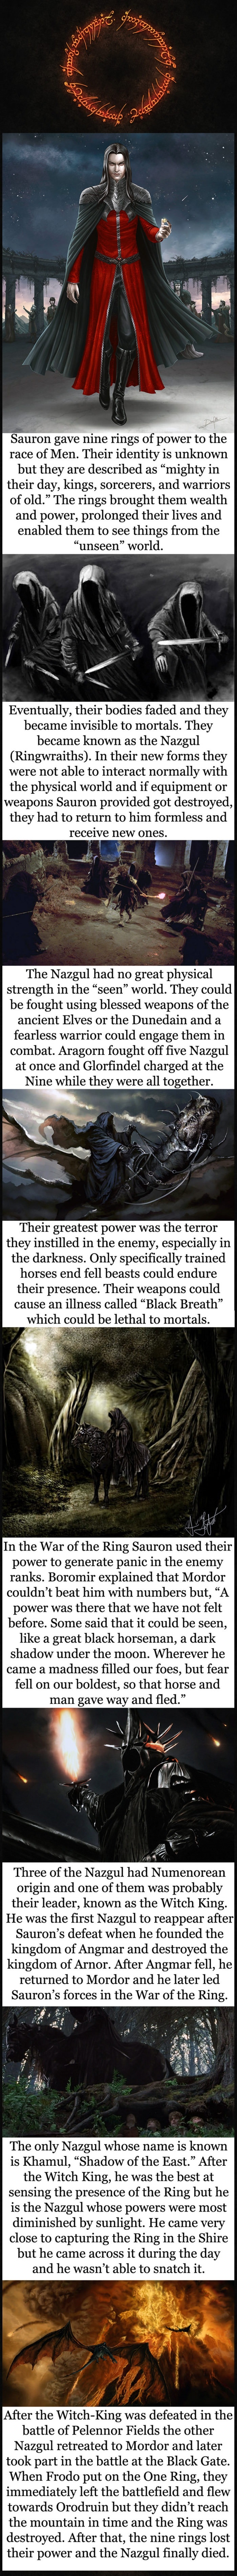 Tolkien lore - The Nazgul